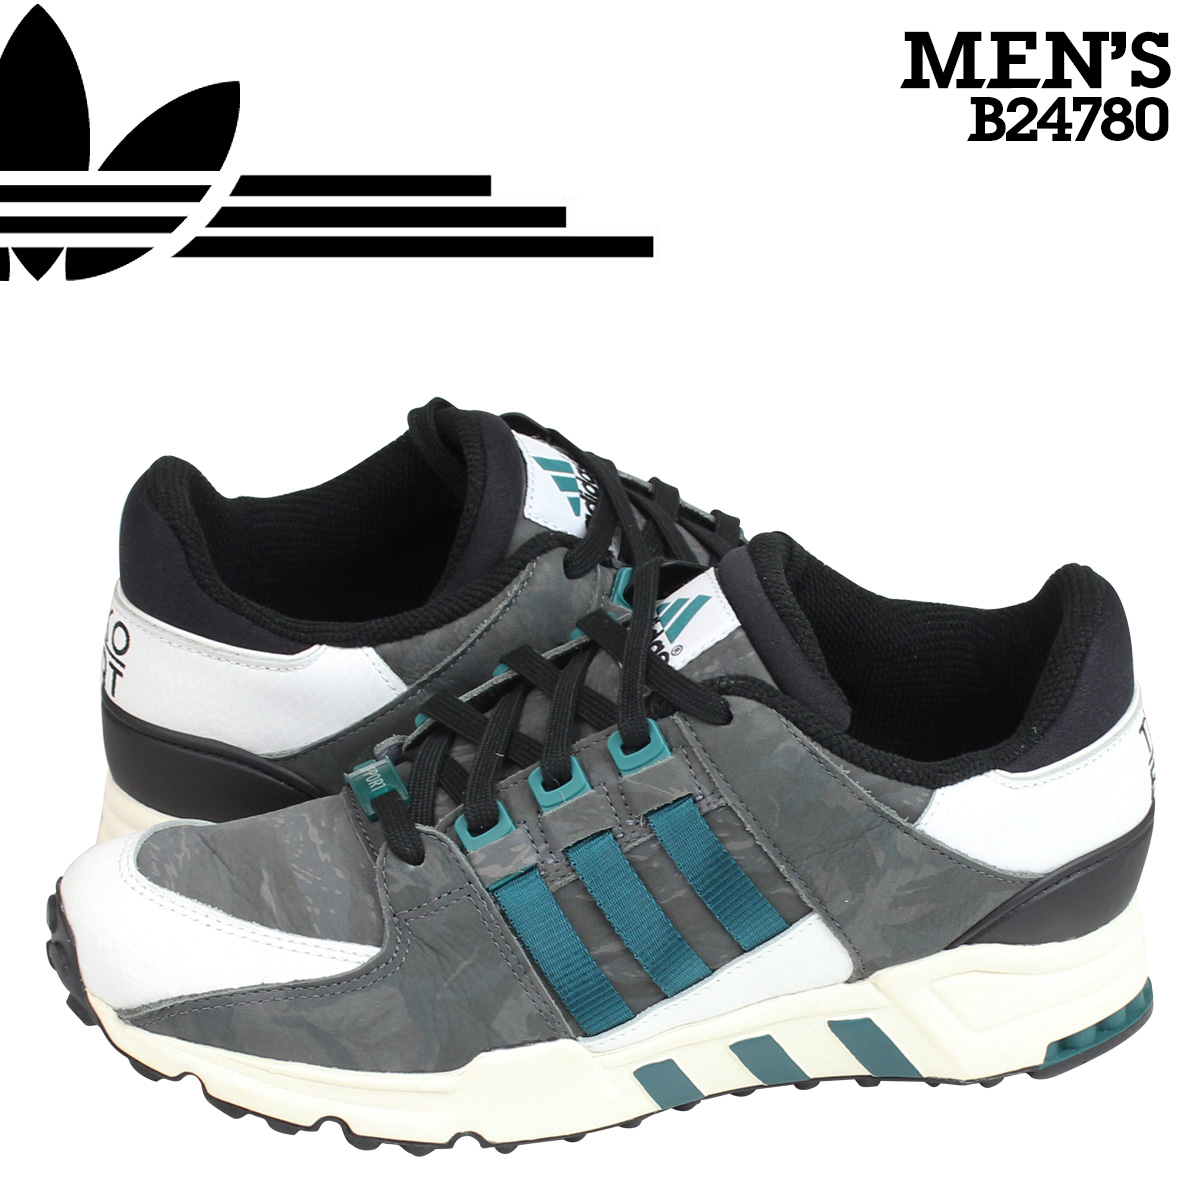 wholesale dealer d7960 91b59 Adidas originals adidas Originals mens EQT RUNNING SUPPORT 93 sneakers equipment  running support B24780 green grey 1016 new in stock